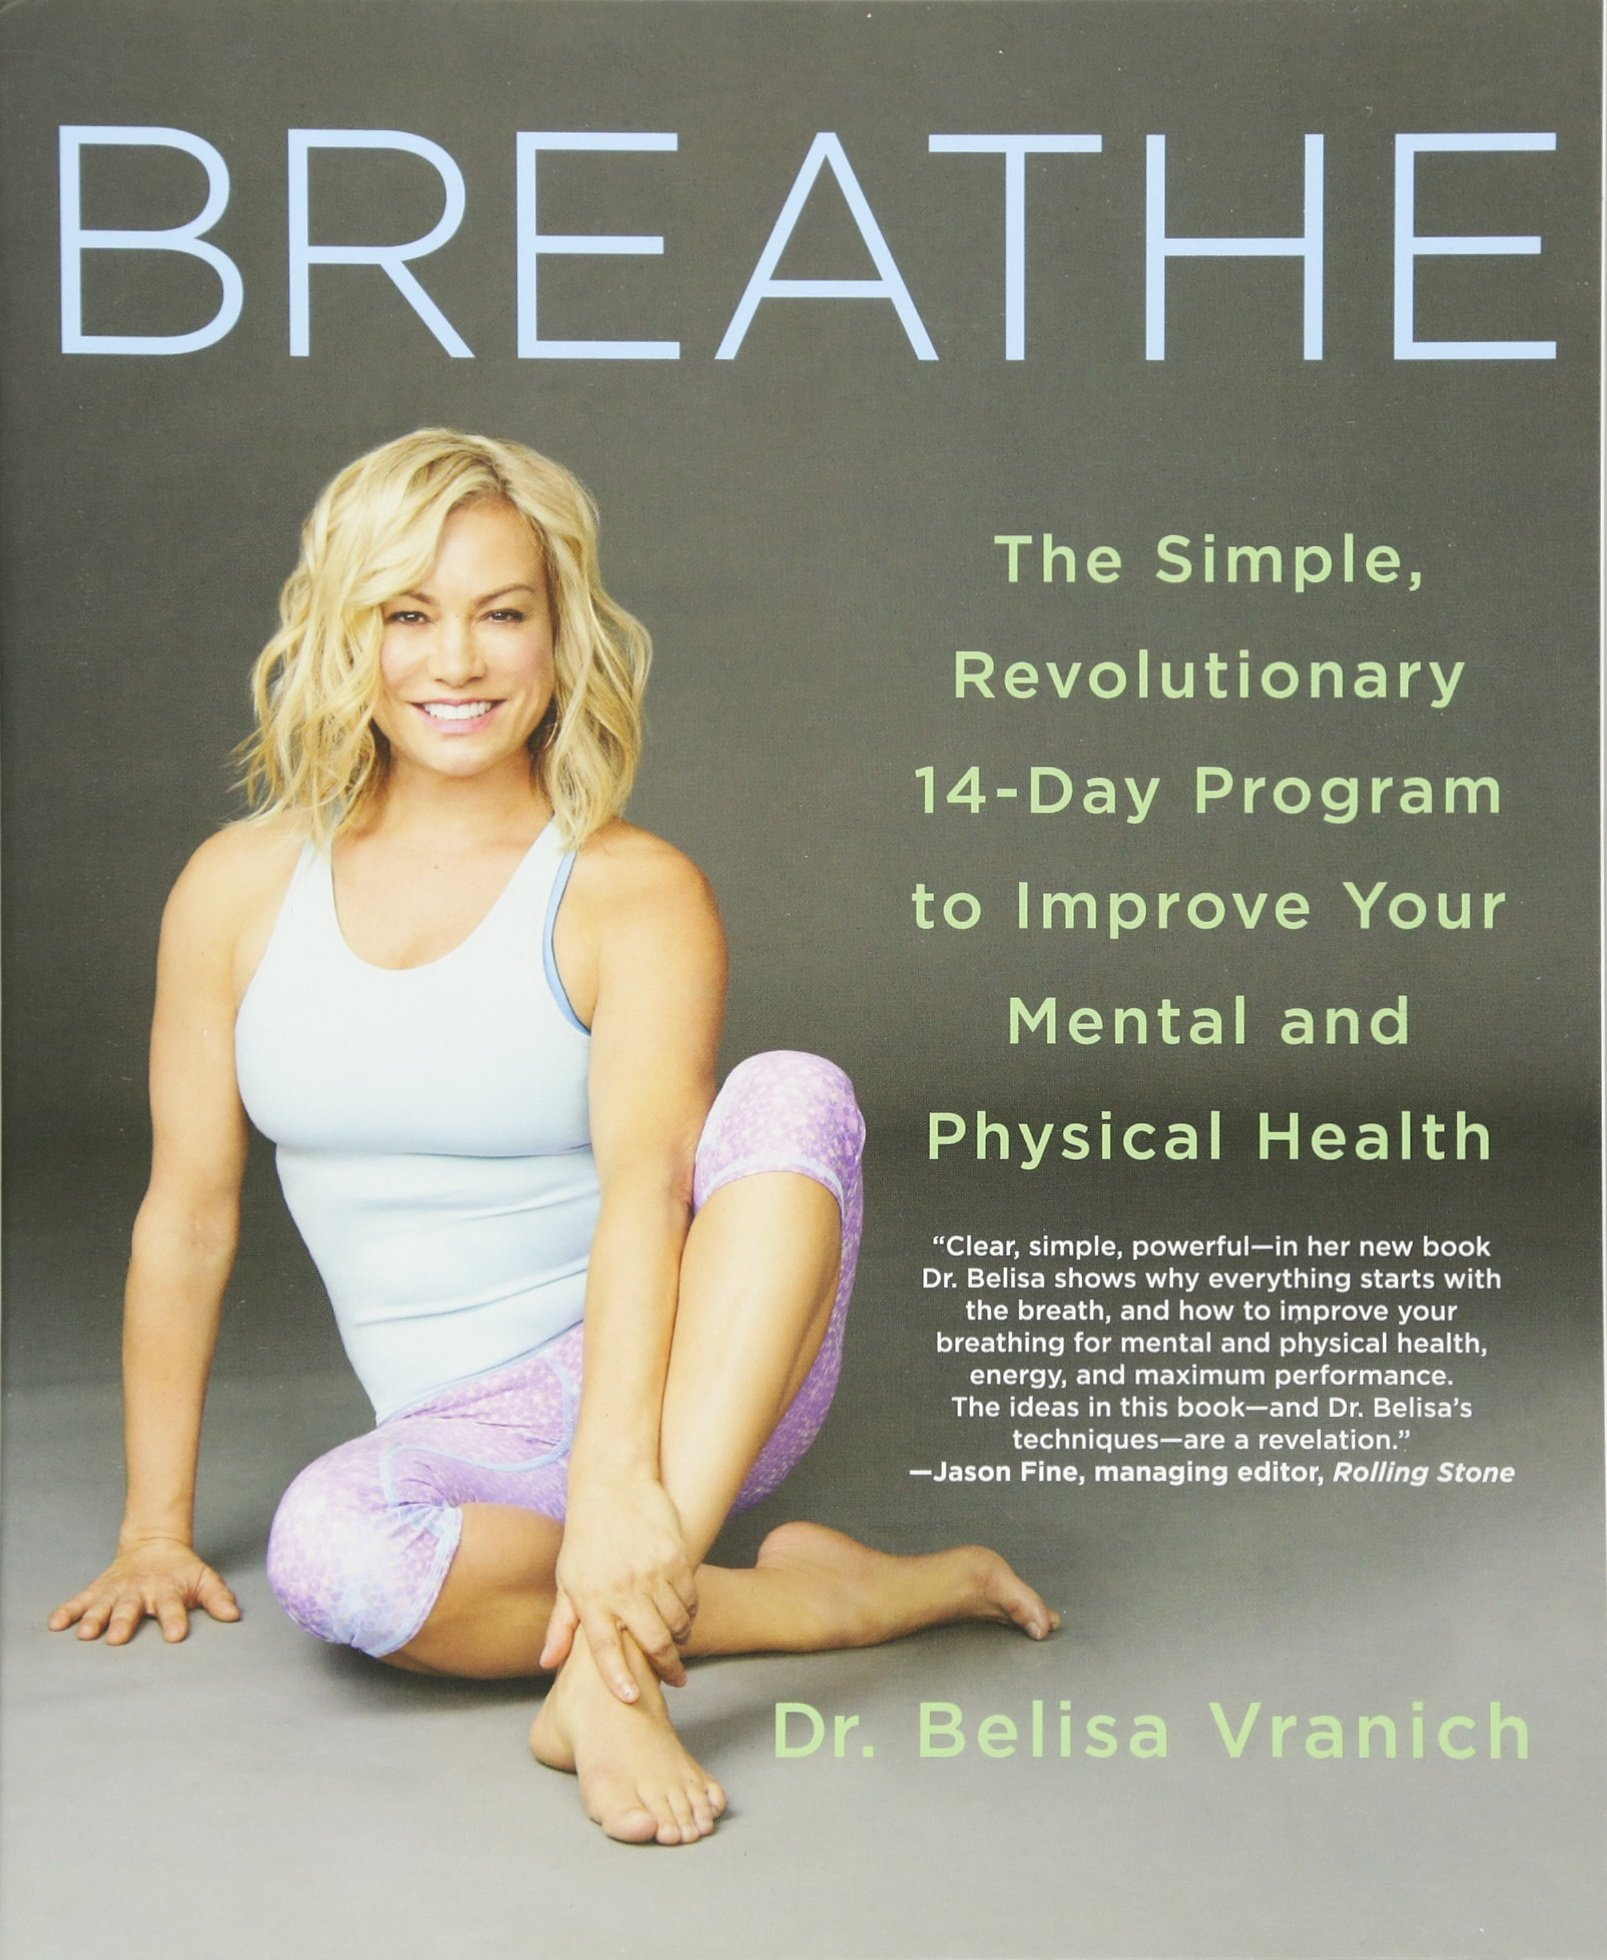 Breathe: The Simple, Revolutionary 14-Day Program to Improve Your Mental  and Physical Health: Belisa Vranich: 9781250106421: Amazon.com: Books